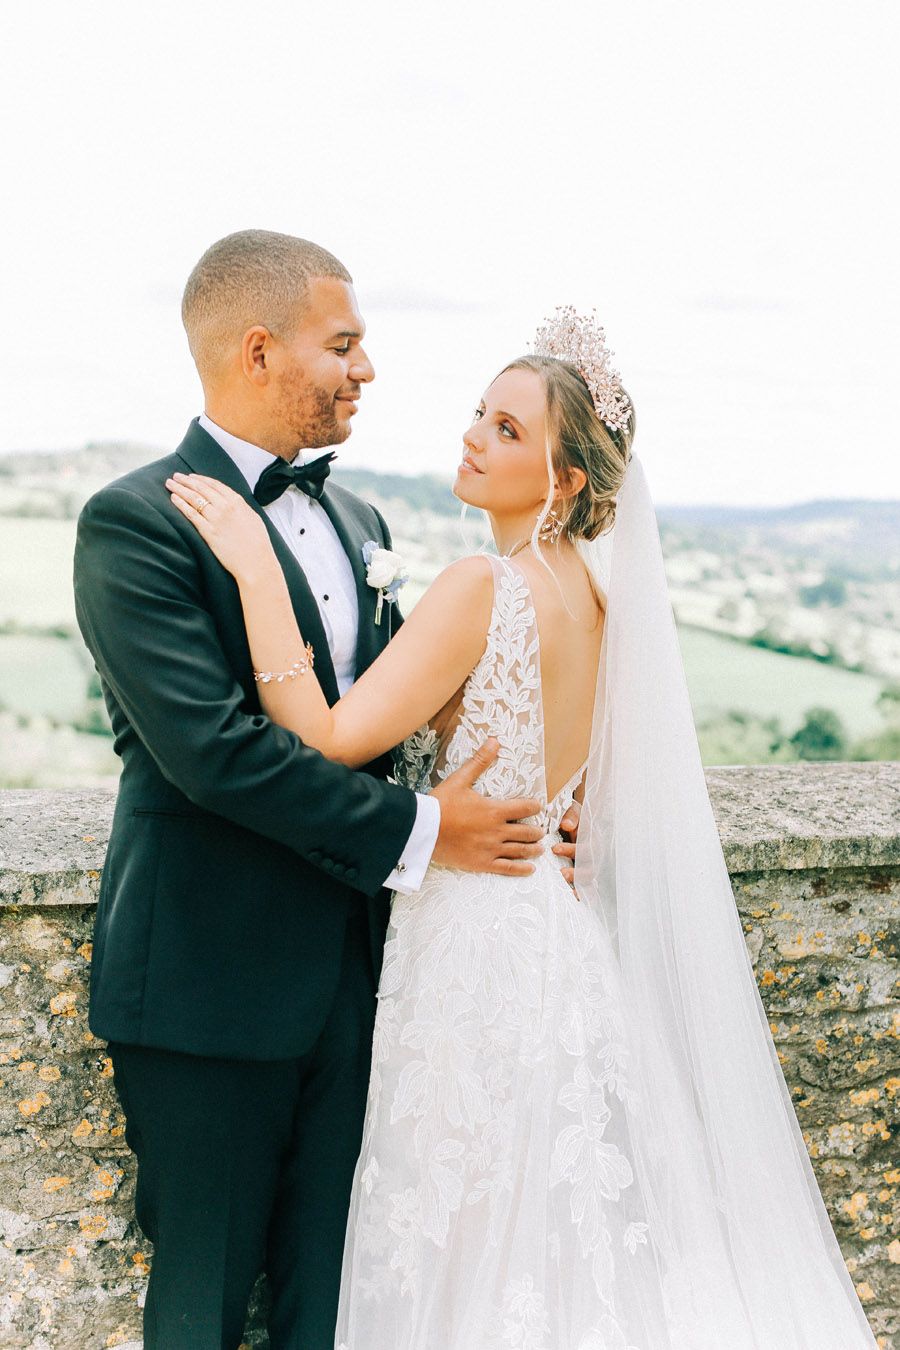 Enchanted Fairytale inspired shoot at Hamswell House, photography credit Charlotte Wise, wedding planner Lucy Ann Reid (17)